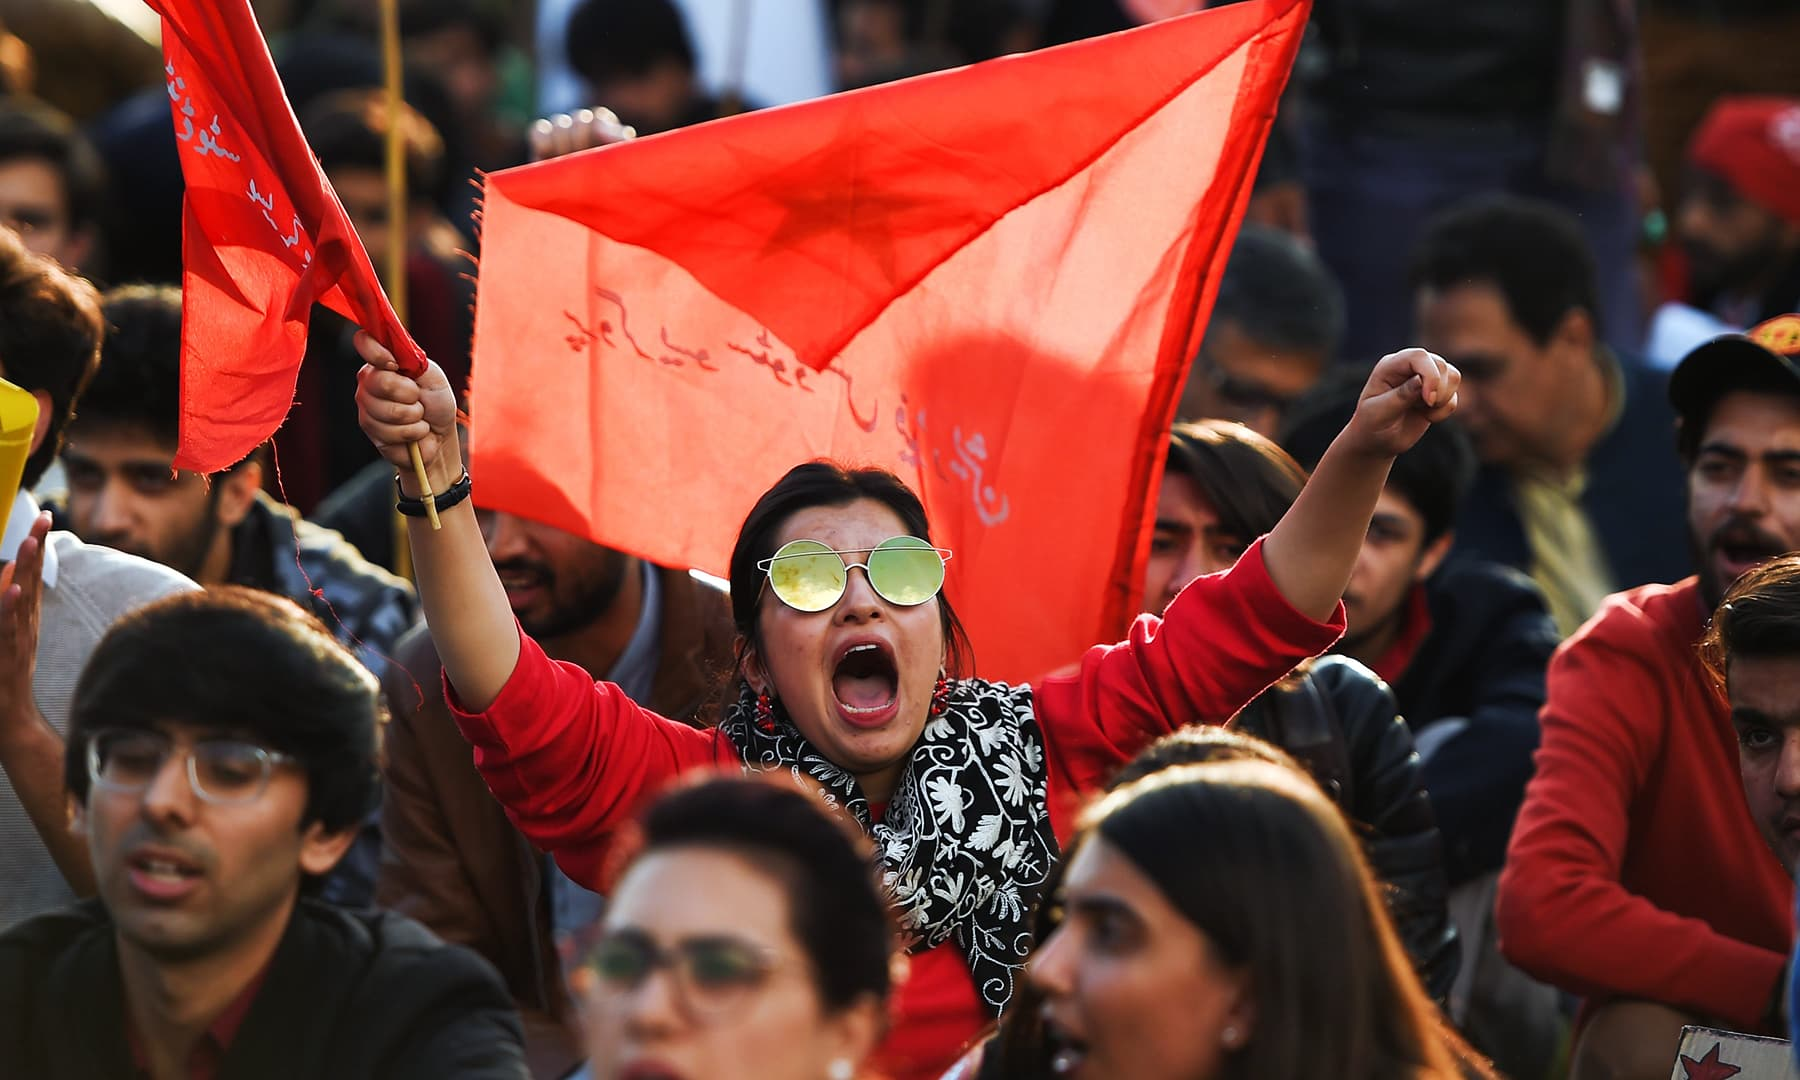 Students waved red flags and chanted slogans demanding more freedom for students, in Islamabad on Friday. — AFP